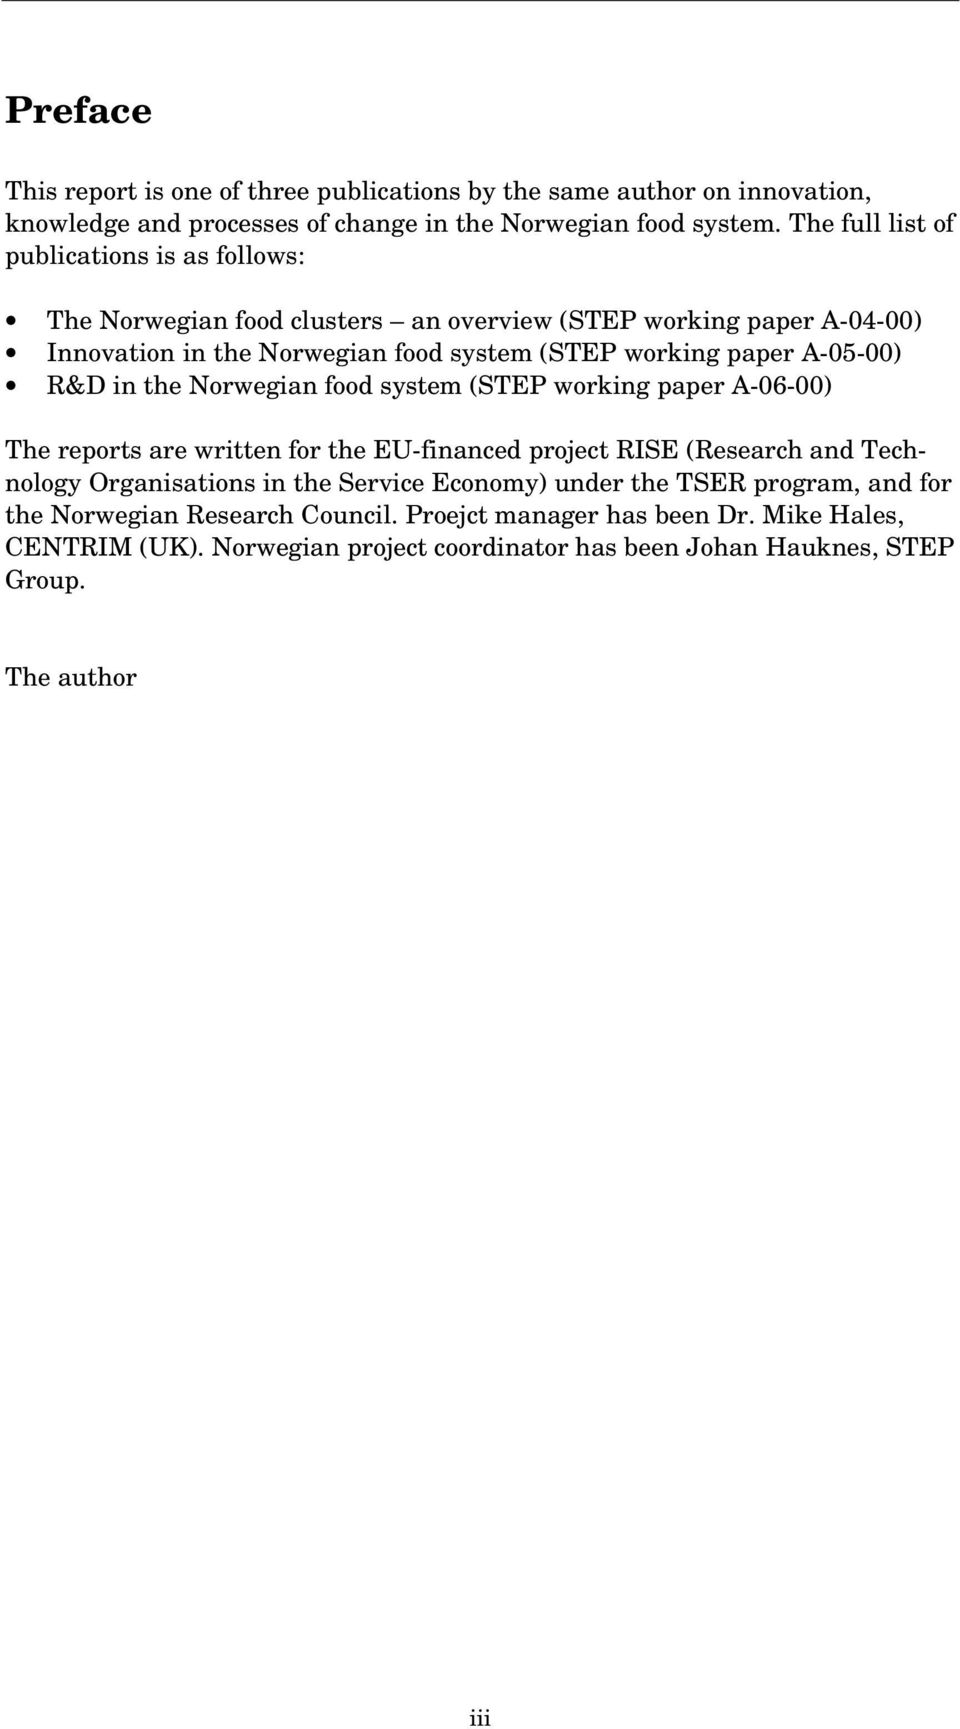 A-05-00) R&D in the Norwegian food system (STEP working paper A-06-00) The reports are written for the EU-financed project RISE (Research and Technology Organisations in the